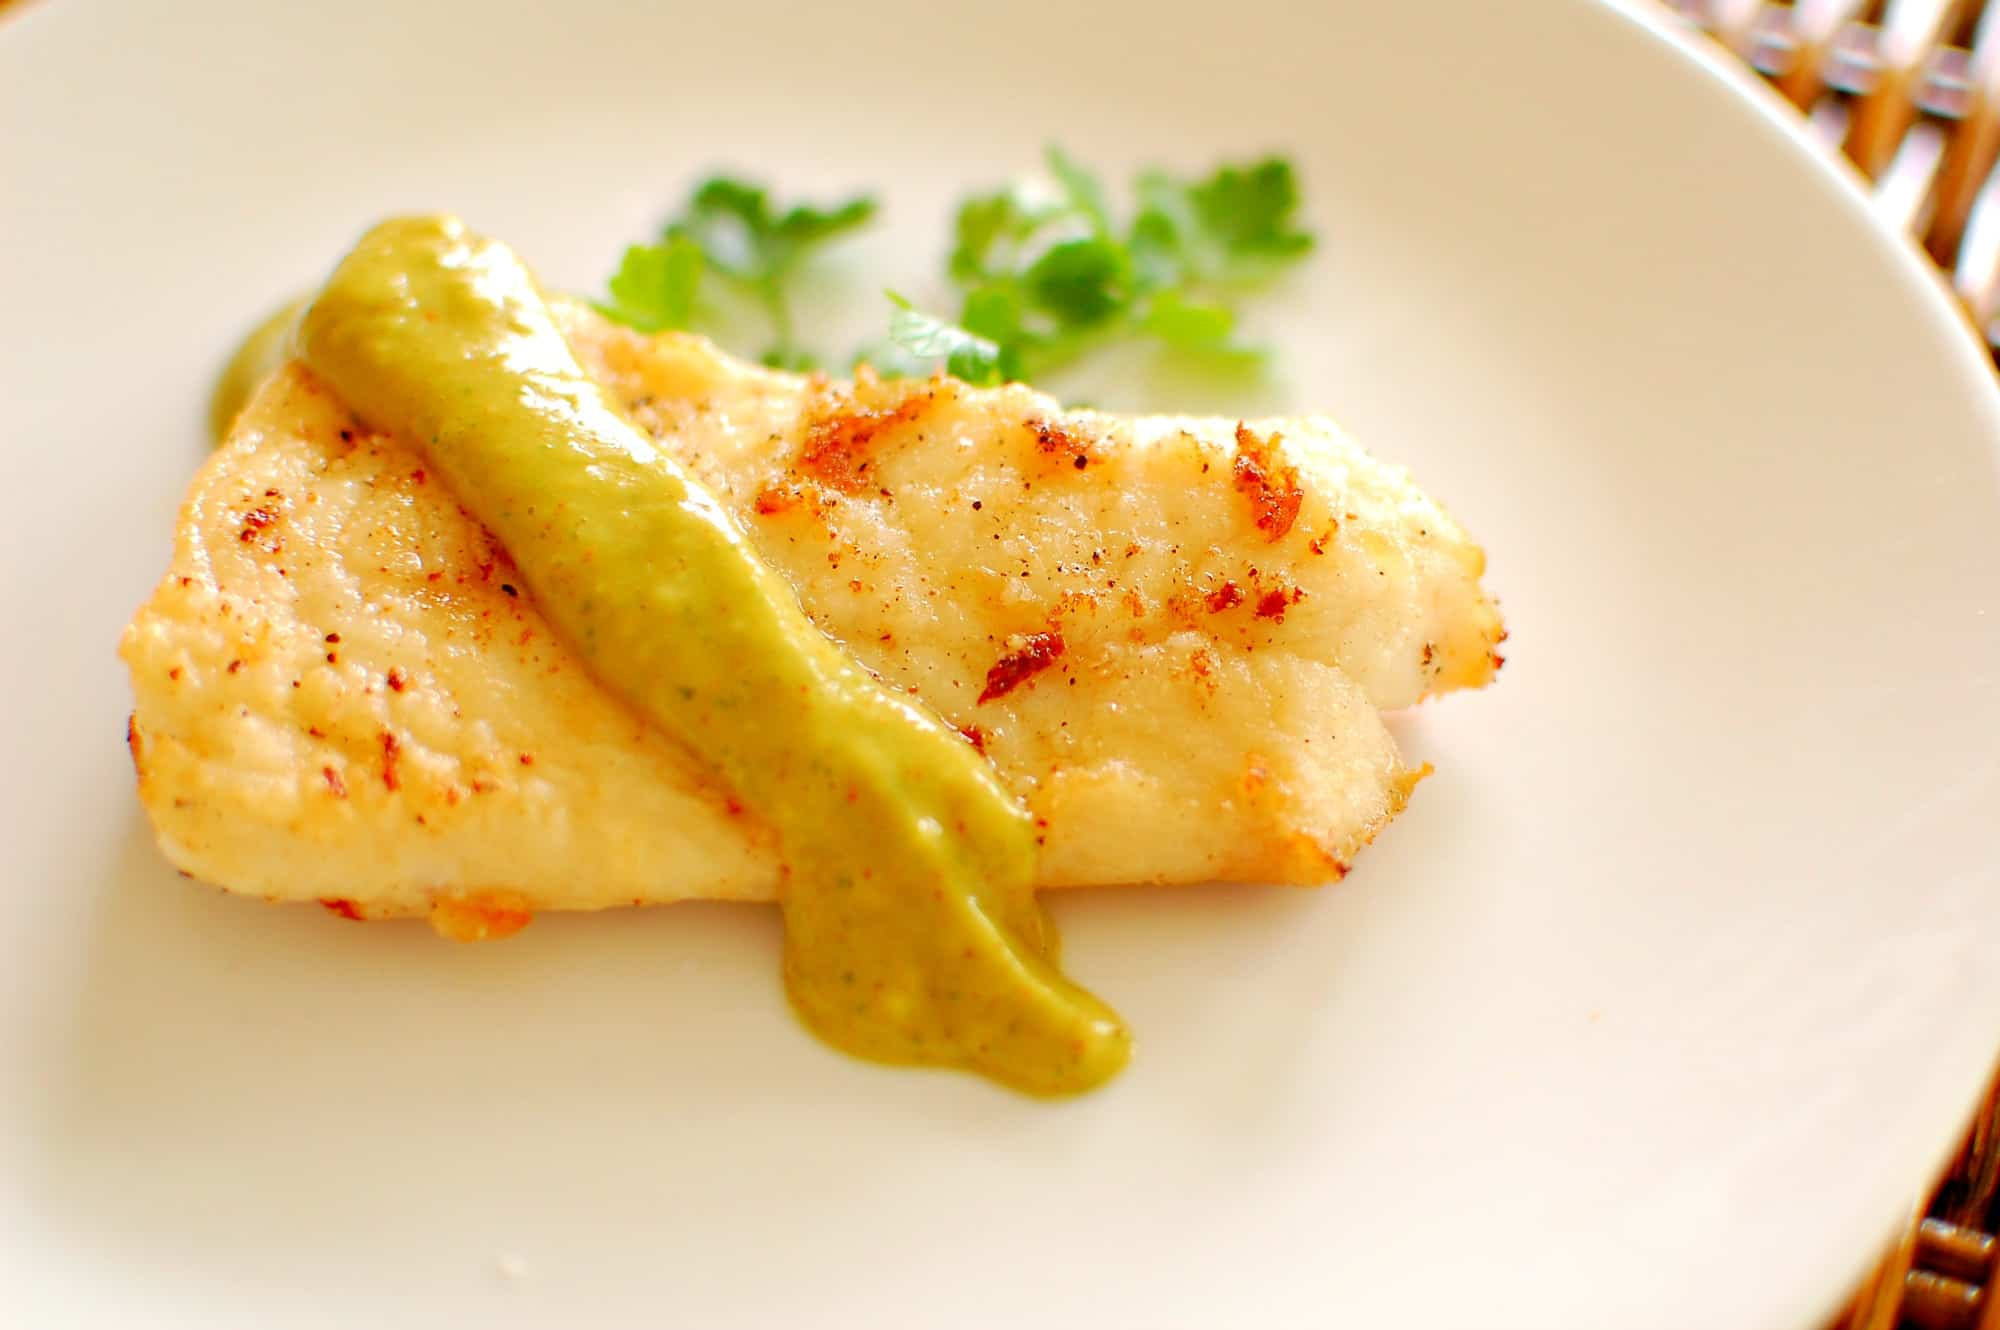 Creamy avocado sauce. This is an easy recipe, using fresh ingredients to make a wonderful tasting condiment to pair with fried fish.   joeshealthymeals.com